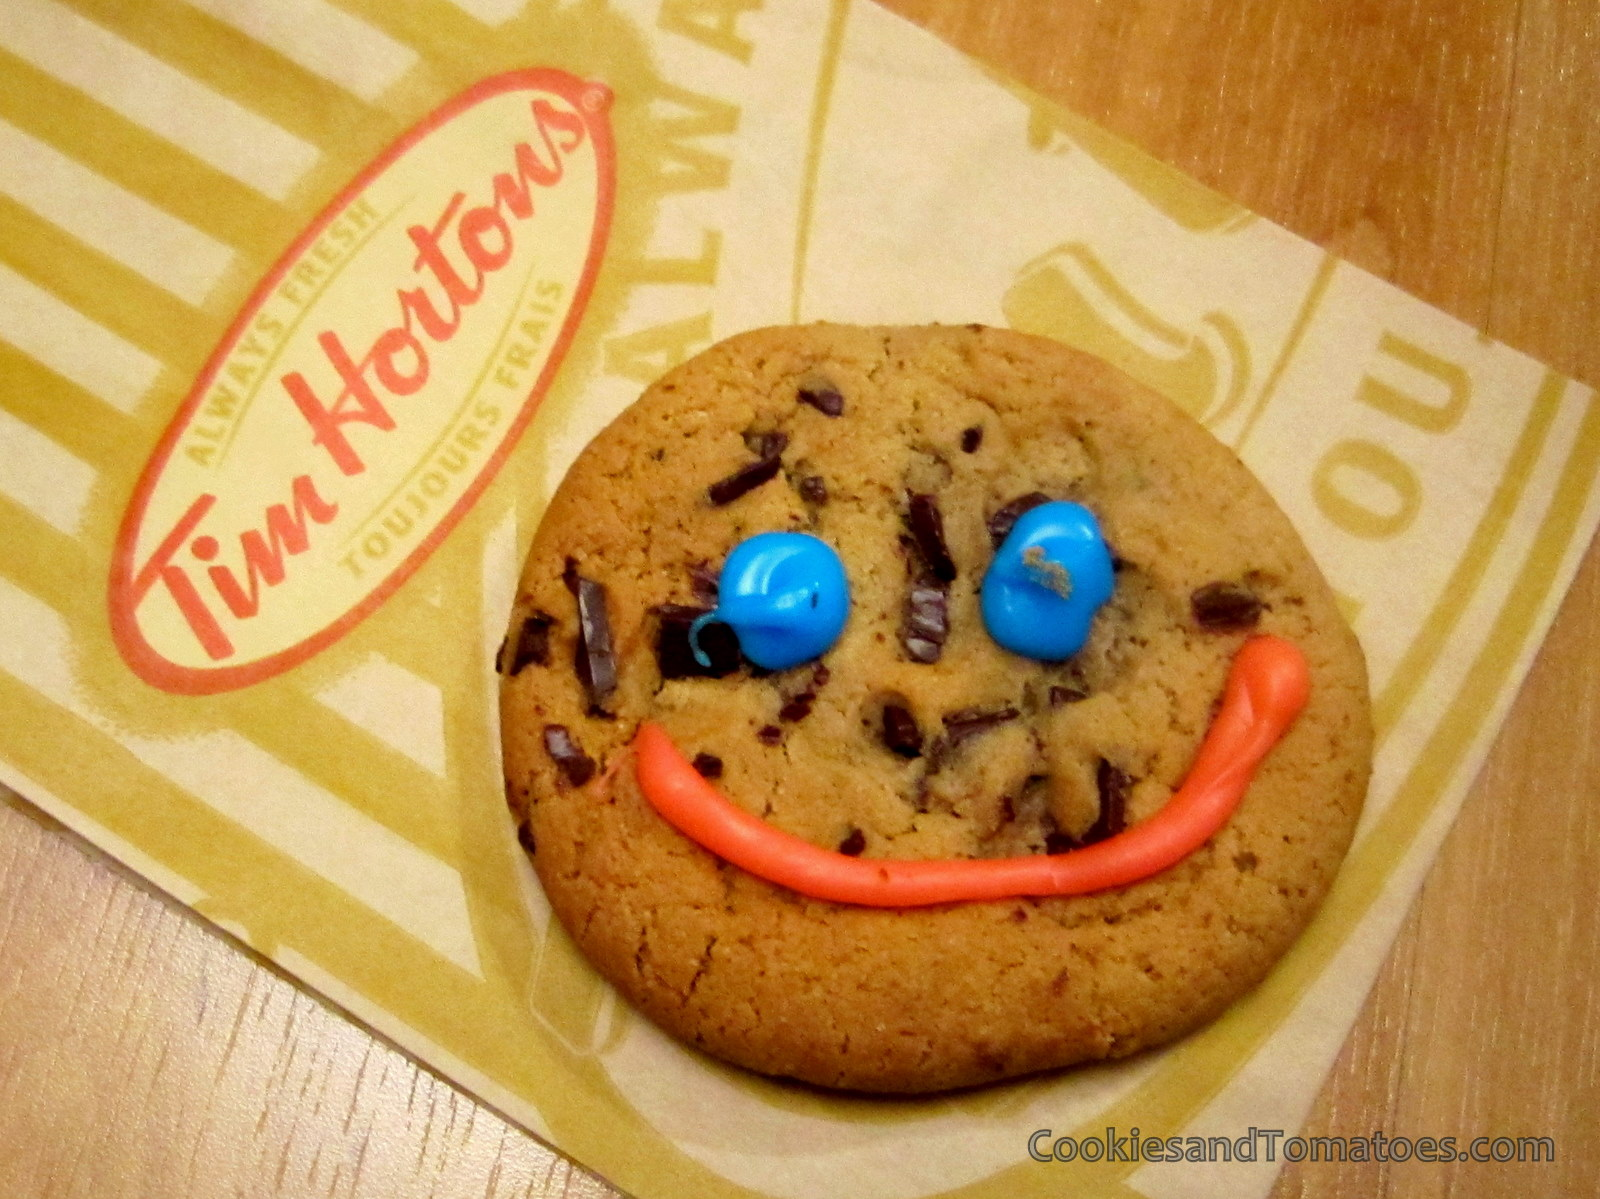 Smile Cookies are available